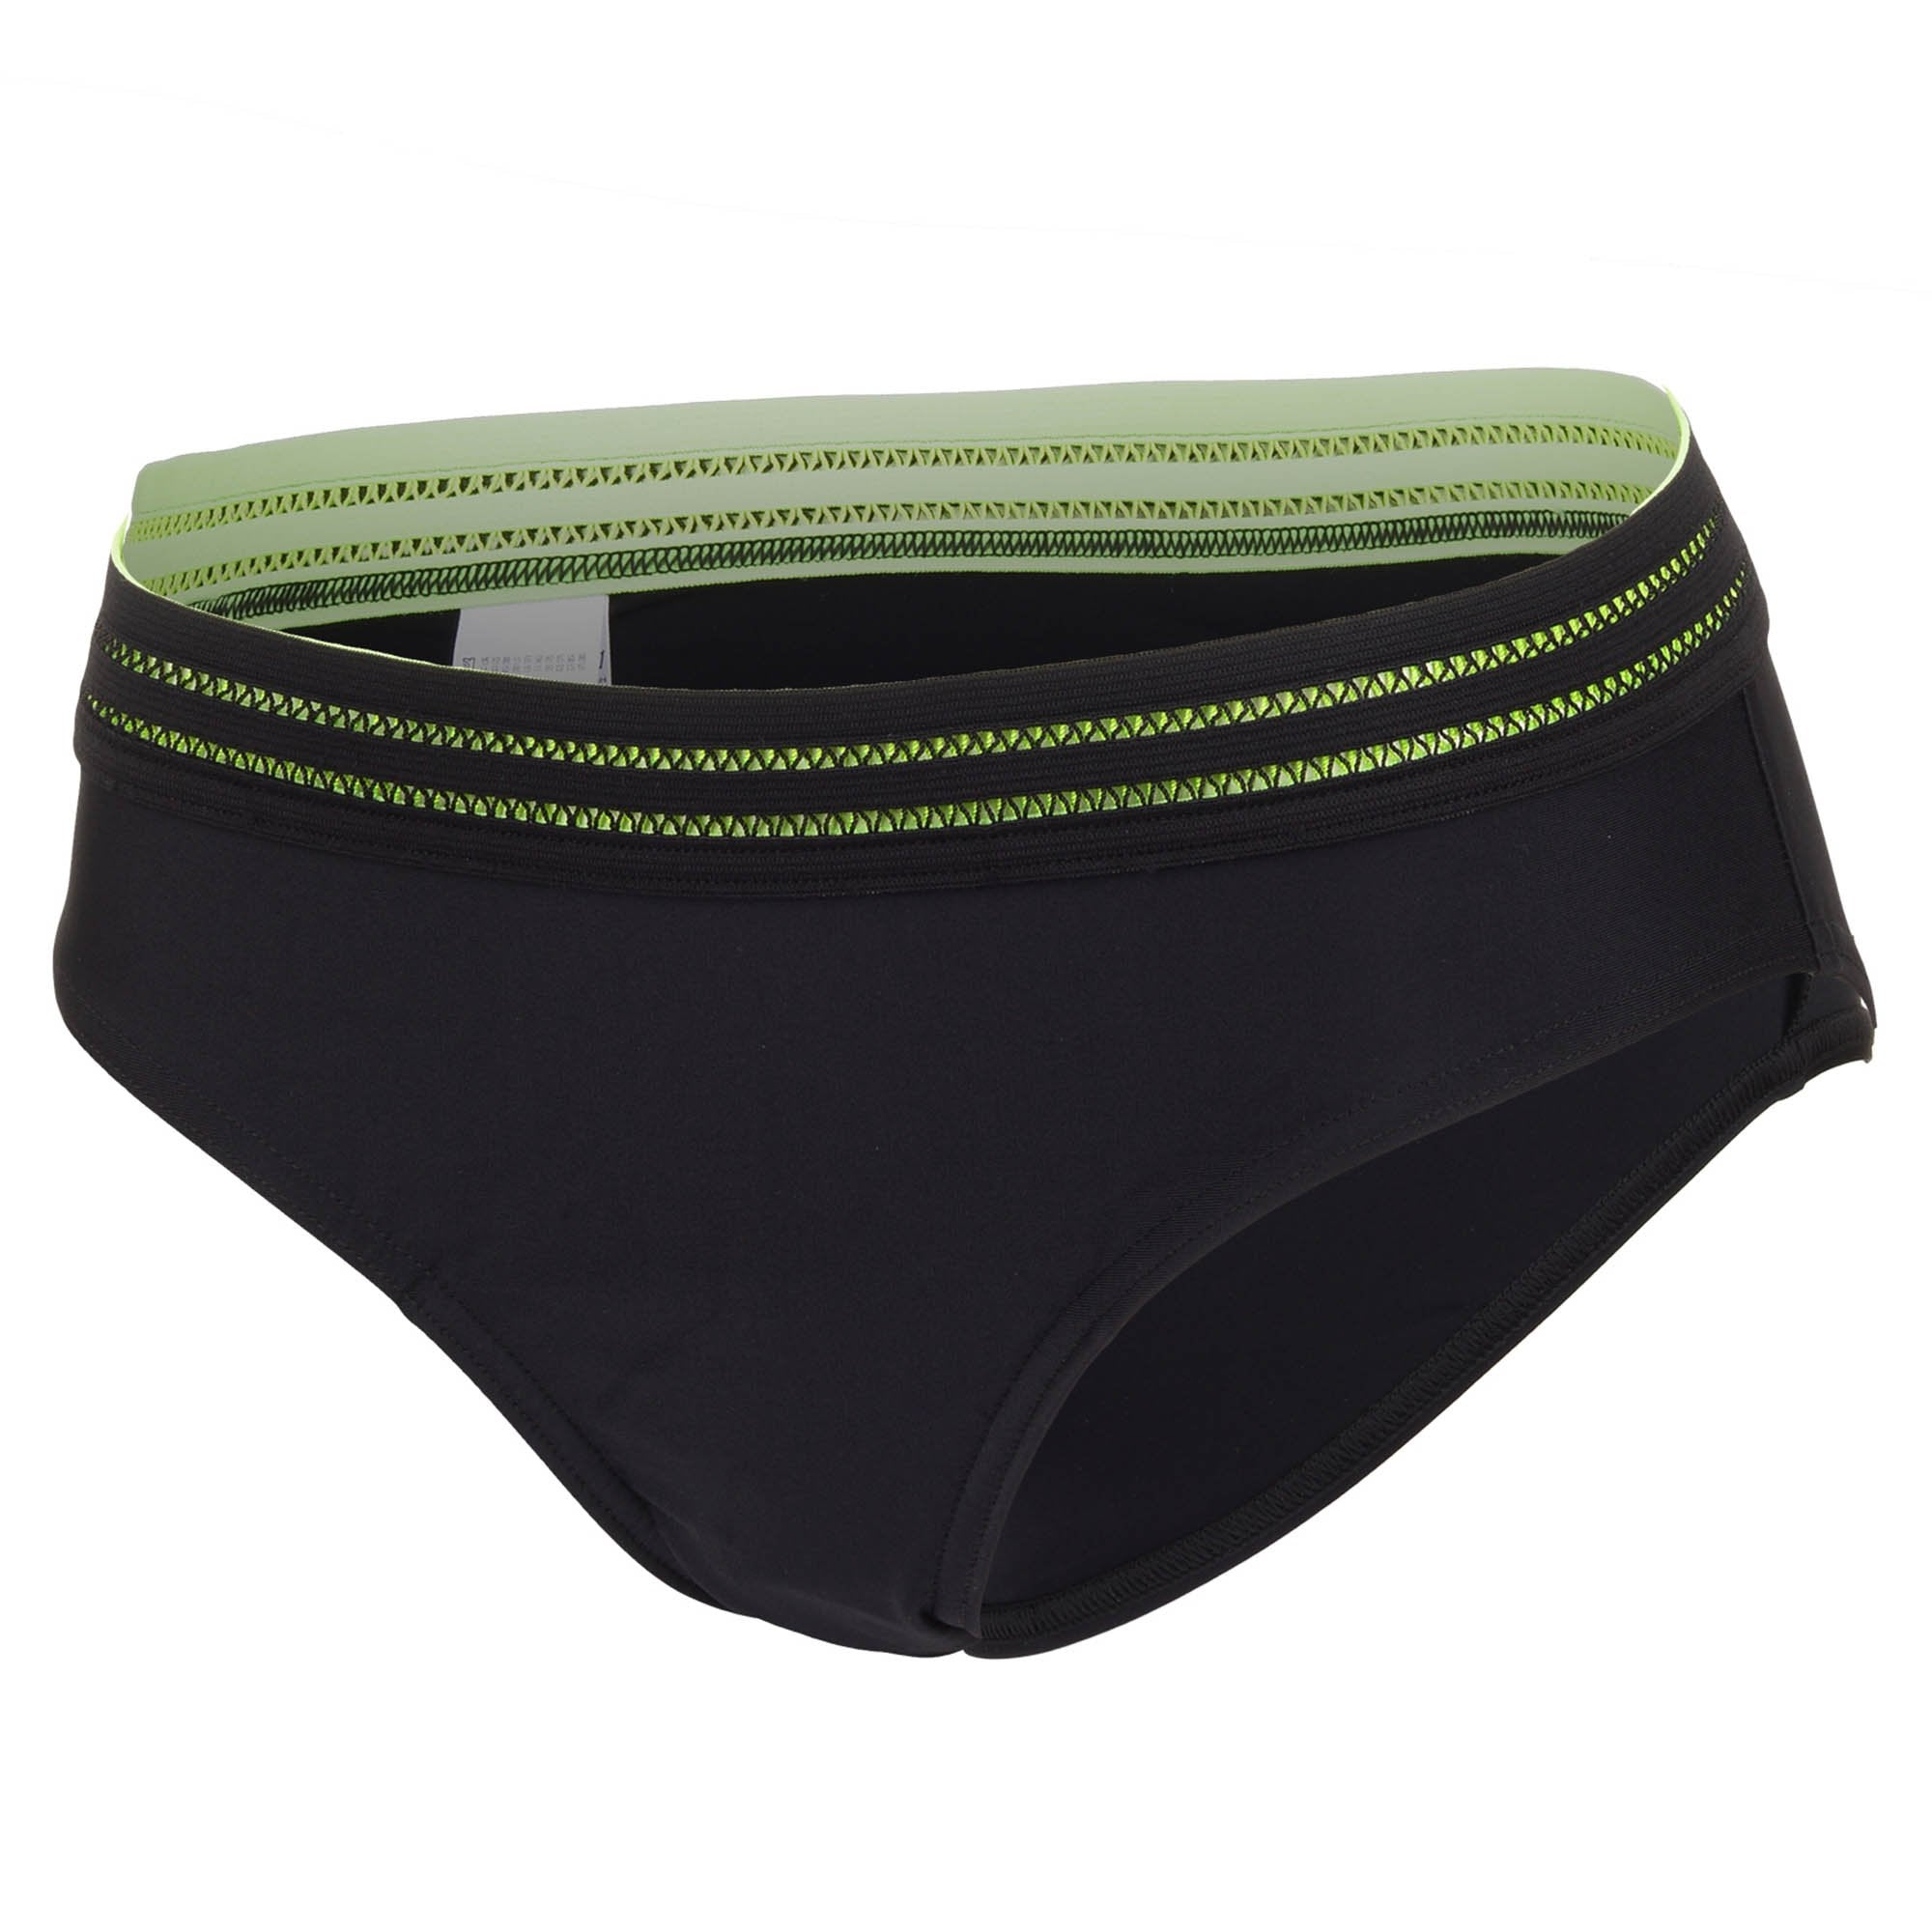 86f83cb37fa2a Buy Speedo Women Reflect Wave Sports Brief Online in Singapore | Royal  Sporting House